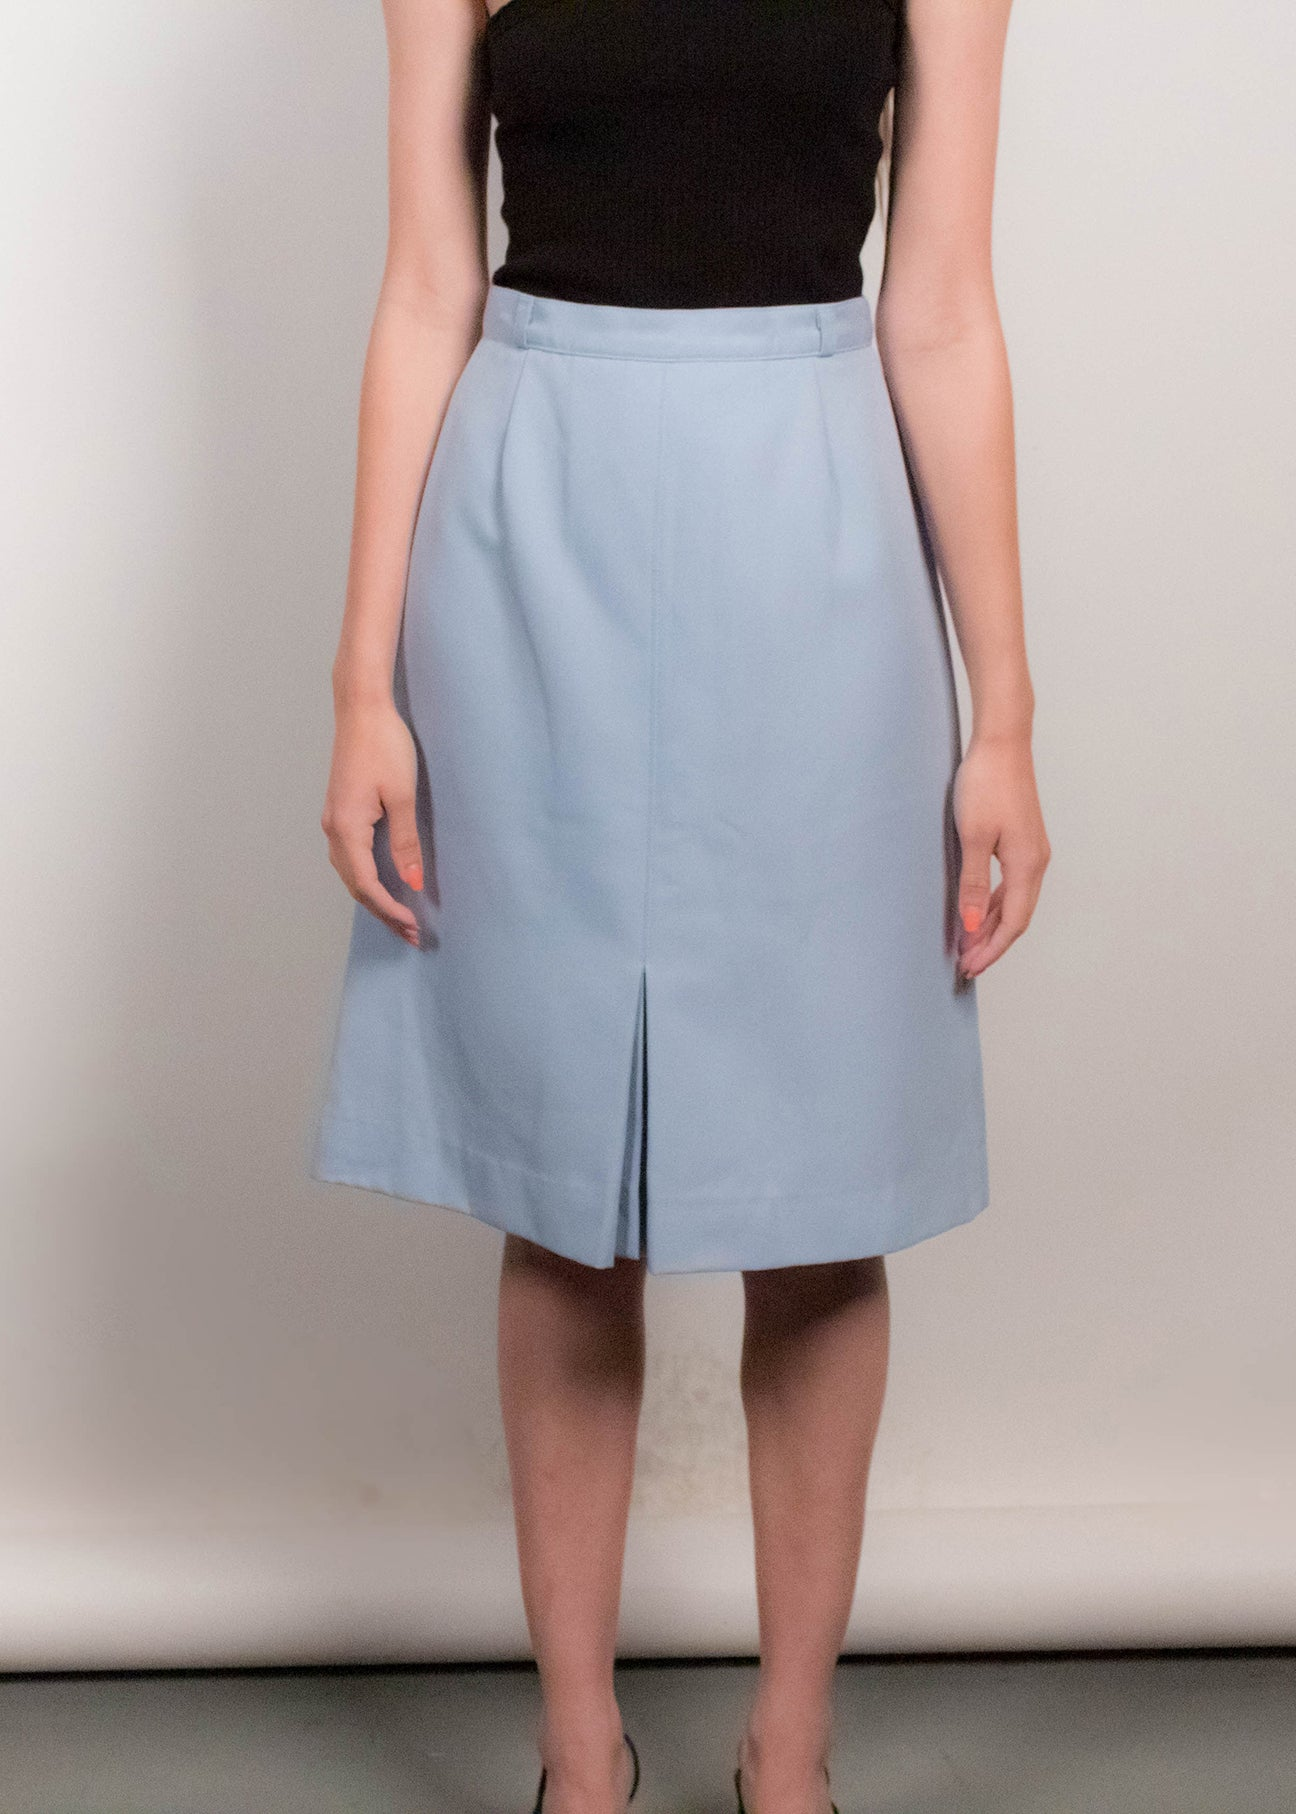 70s High-Waisted A-line Skirt